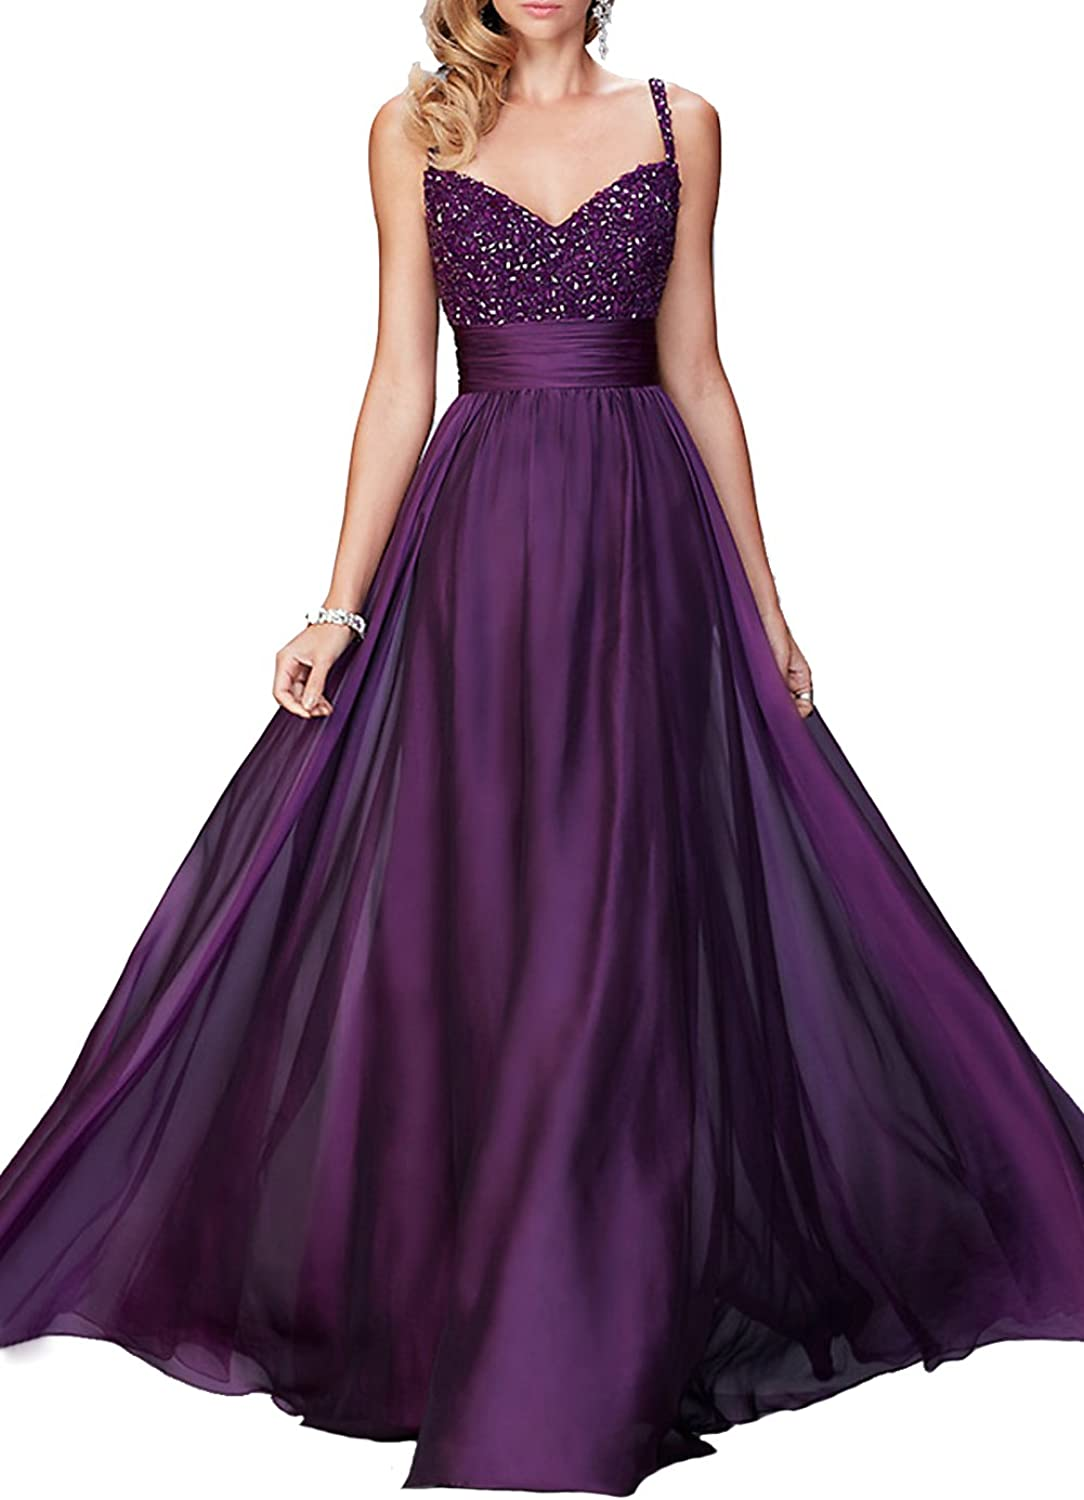 GMAR Womens Beaded Bodice Party Gowns Sweetheart V Back A Line Evening Dresses